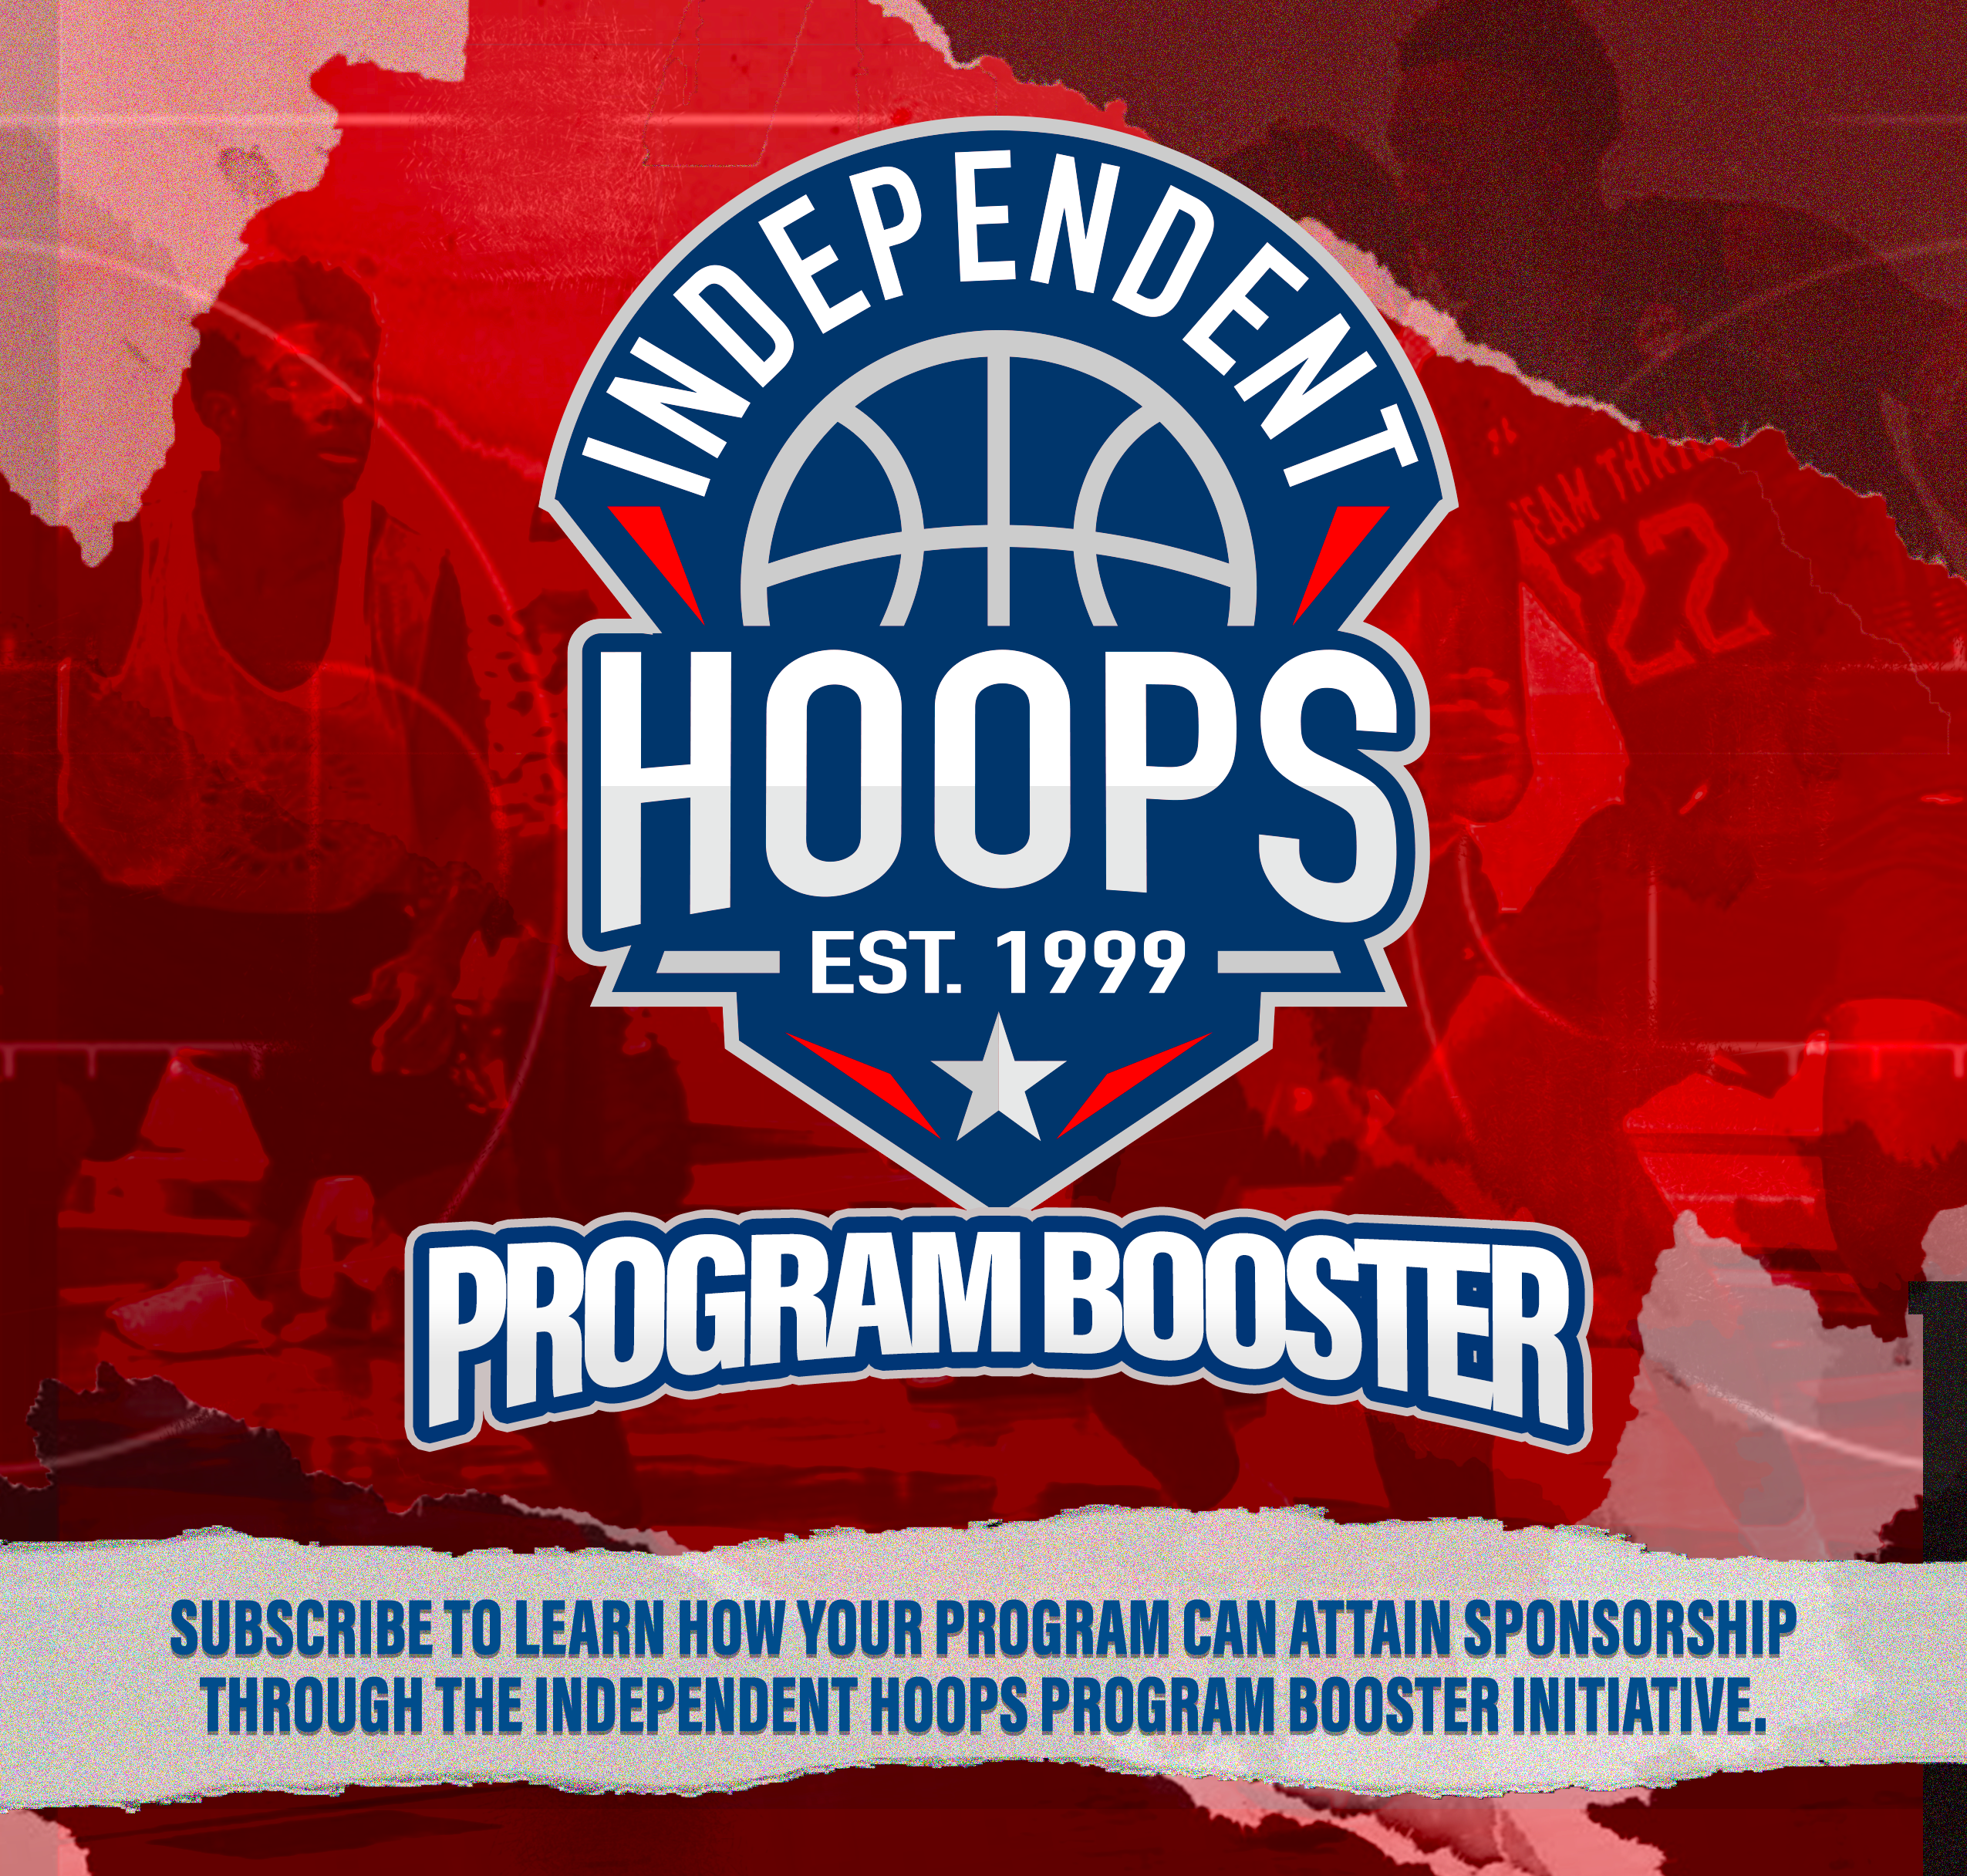 program booster independent hoops